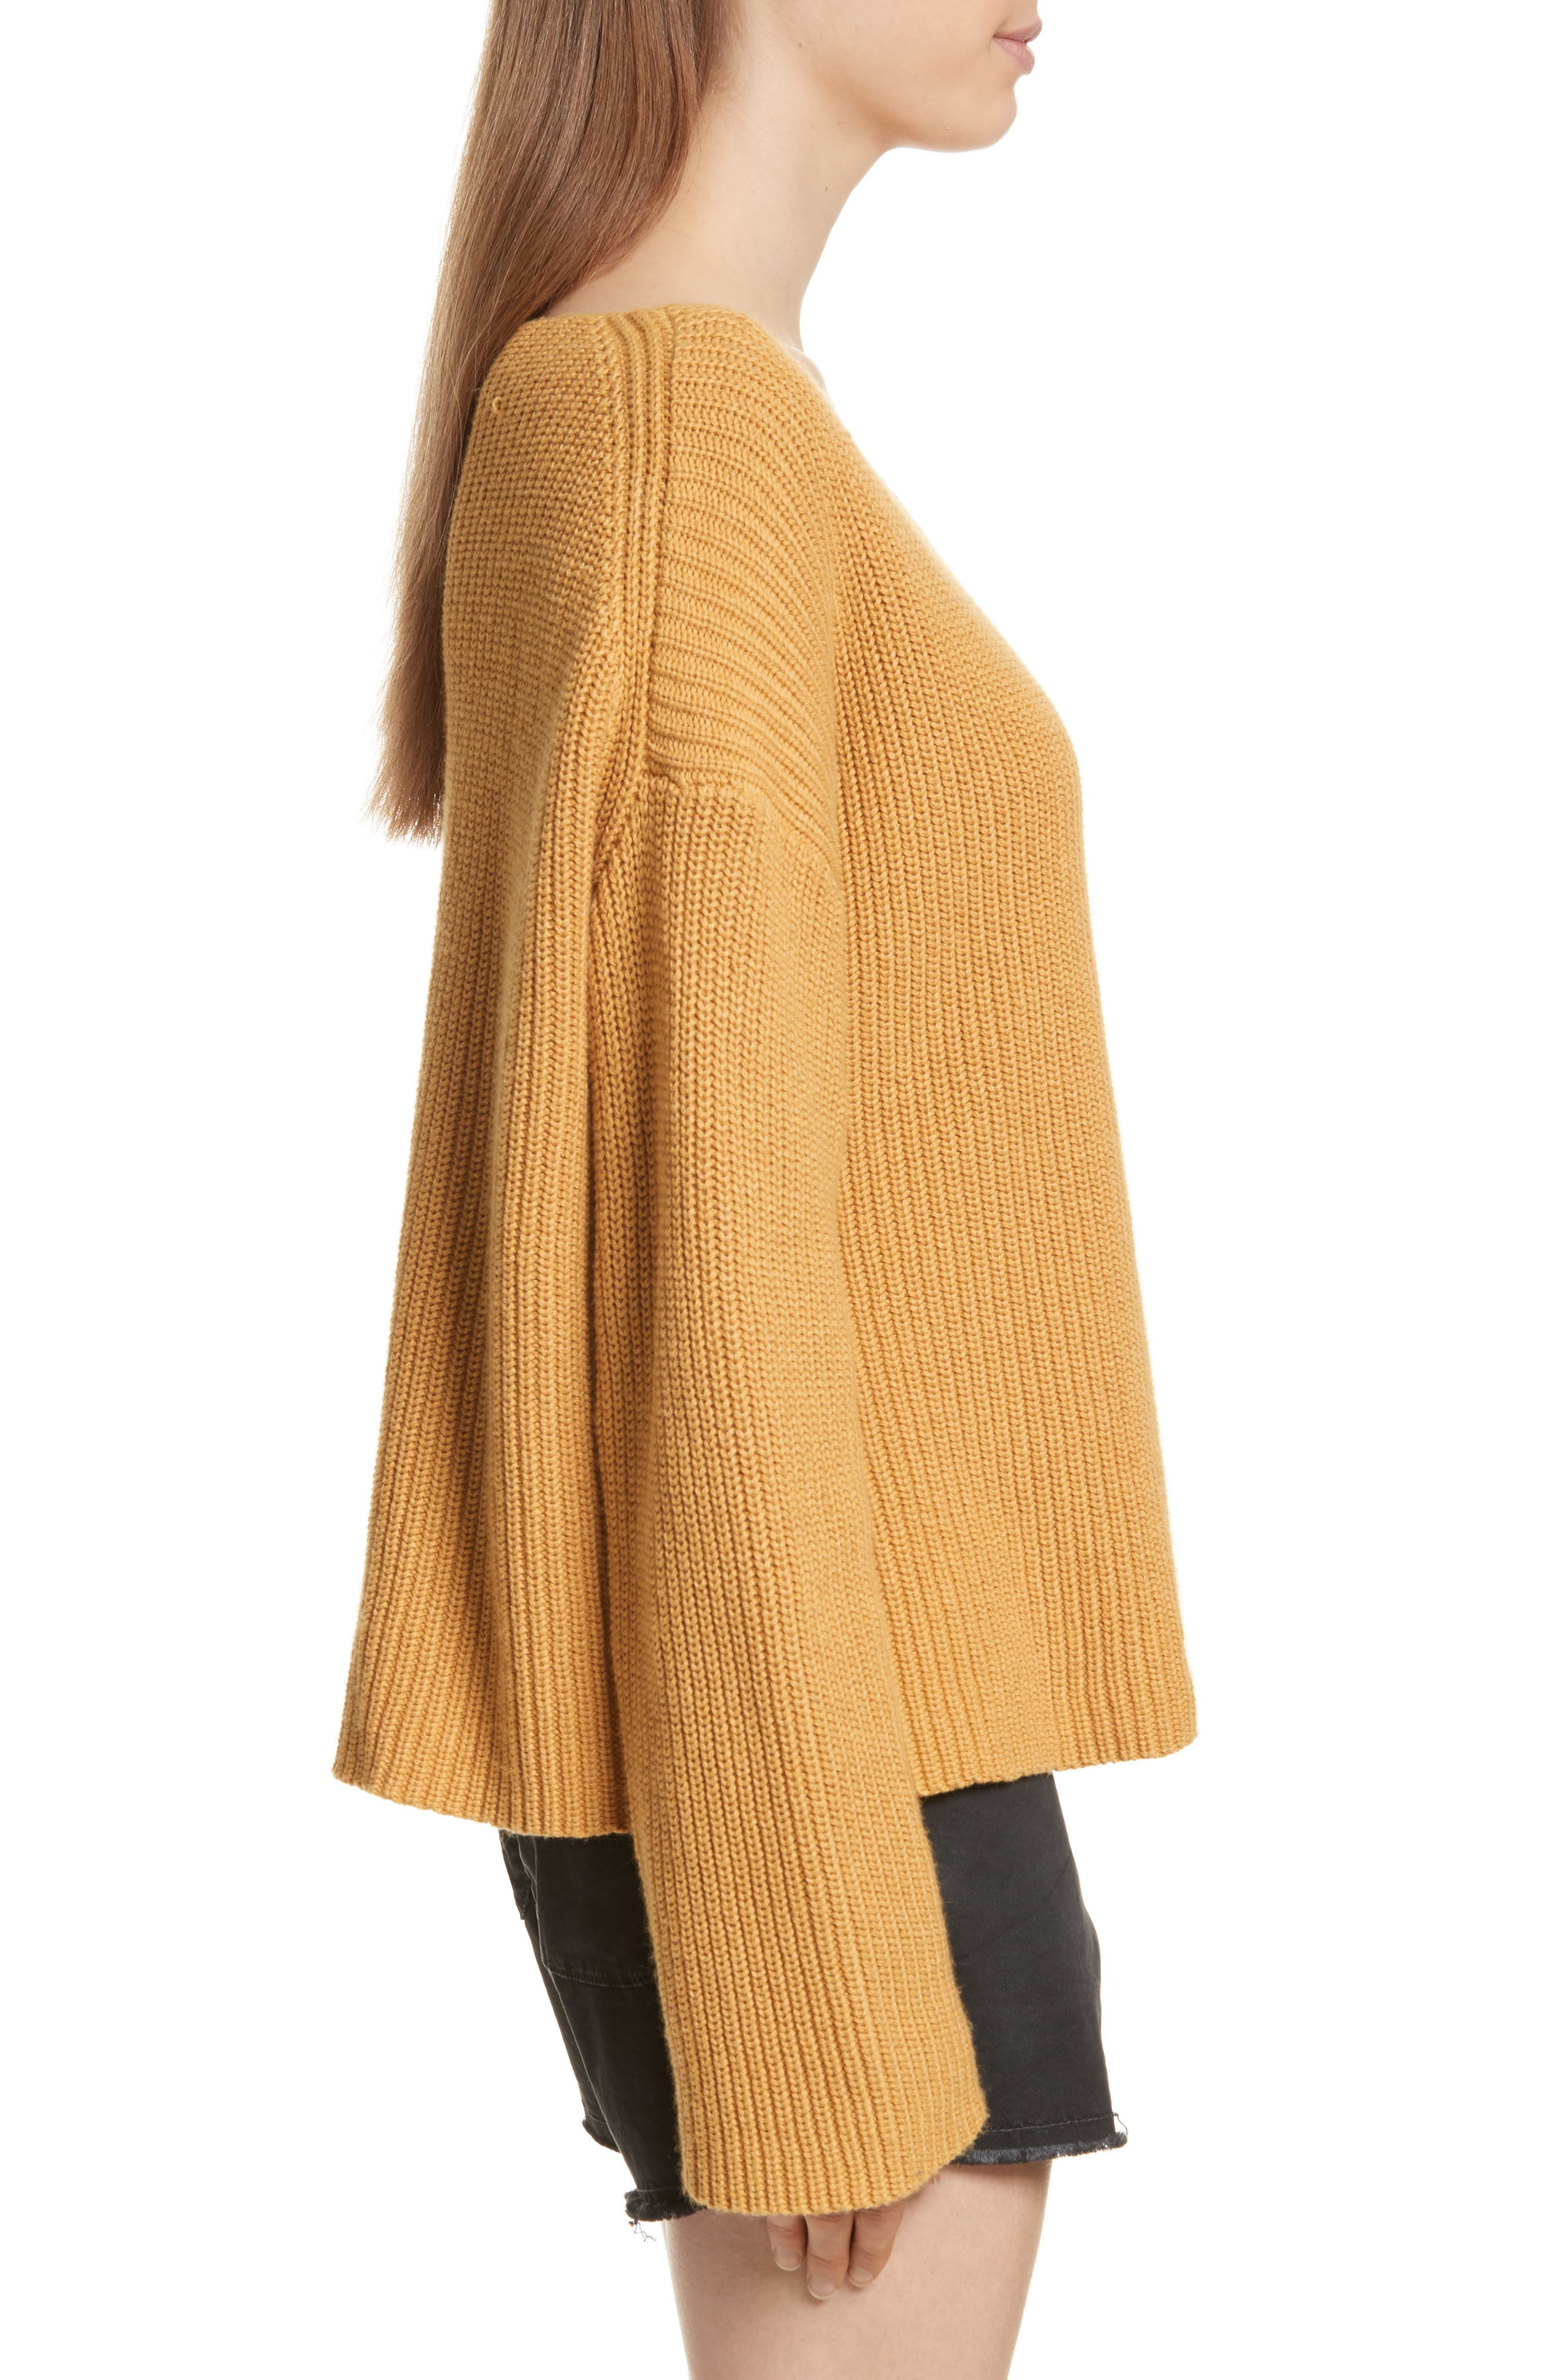 Martindale Ribbed Cotton, Cashmere & Silk Sweater,                             Alternate thumbnail 3, color,                             701